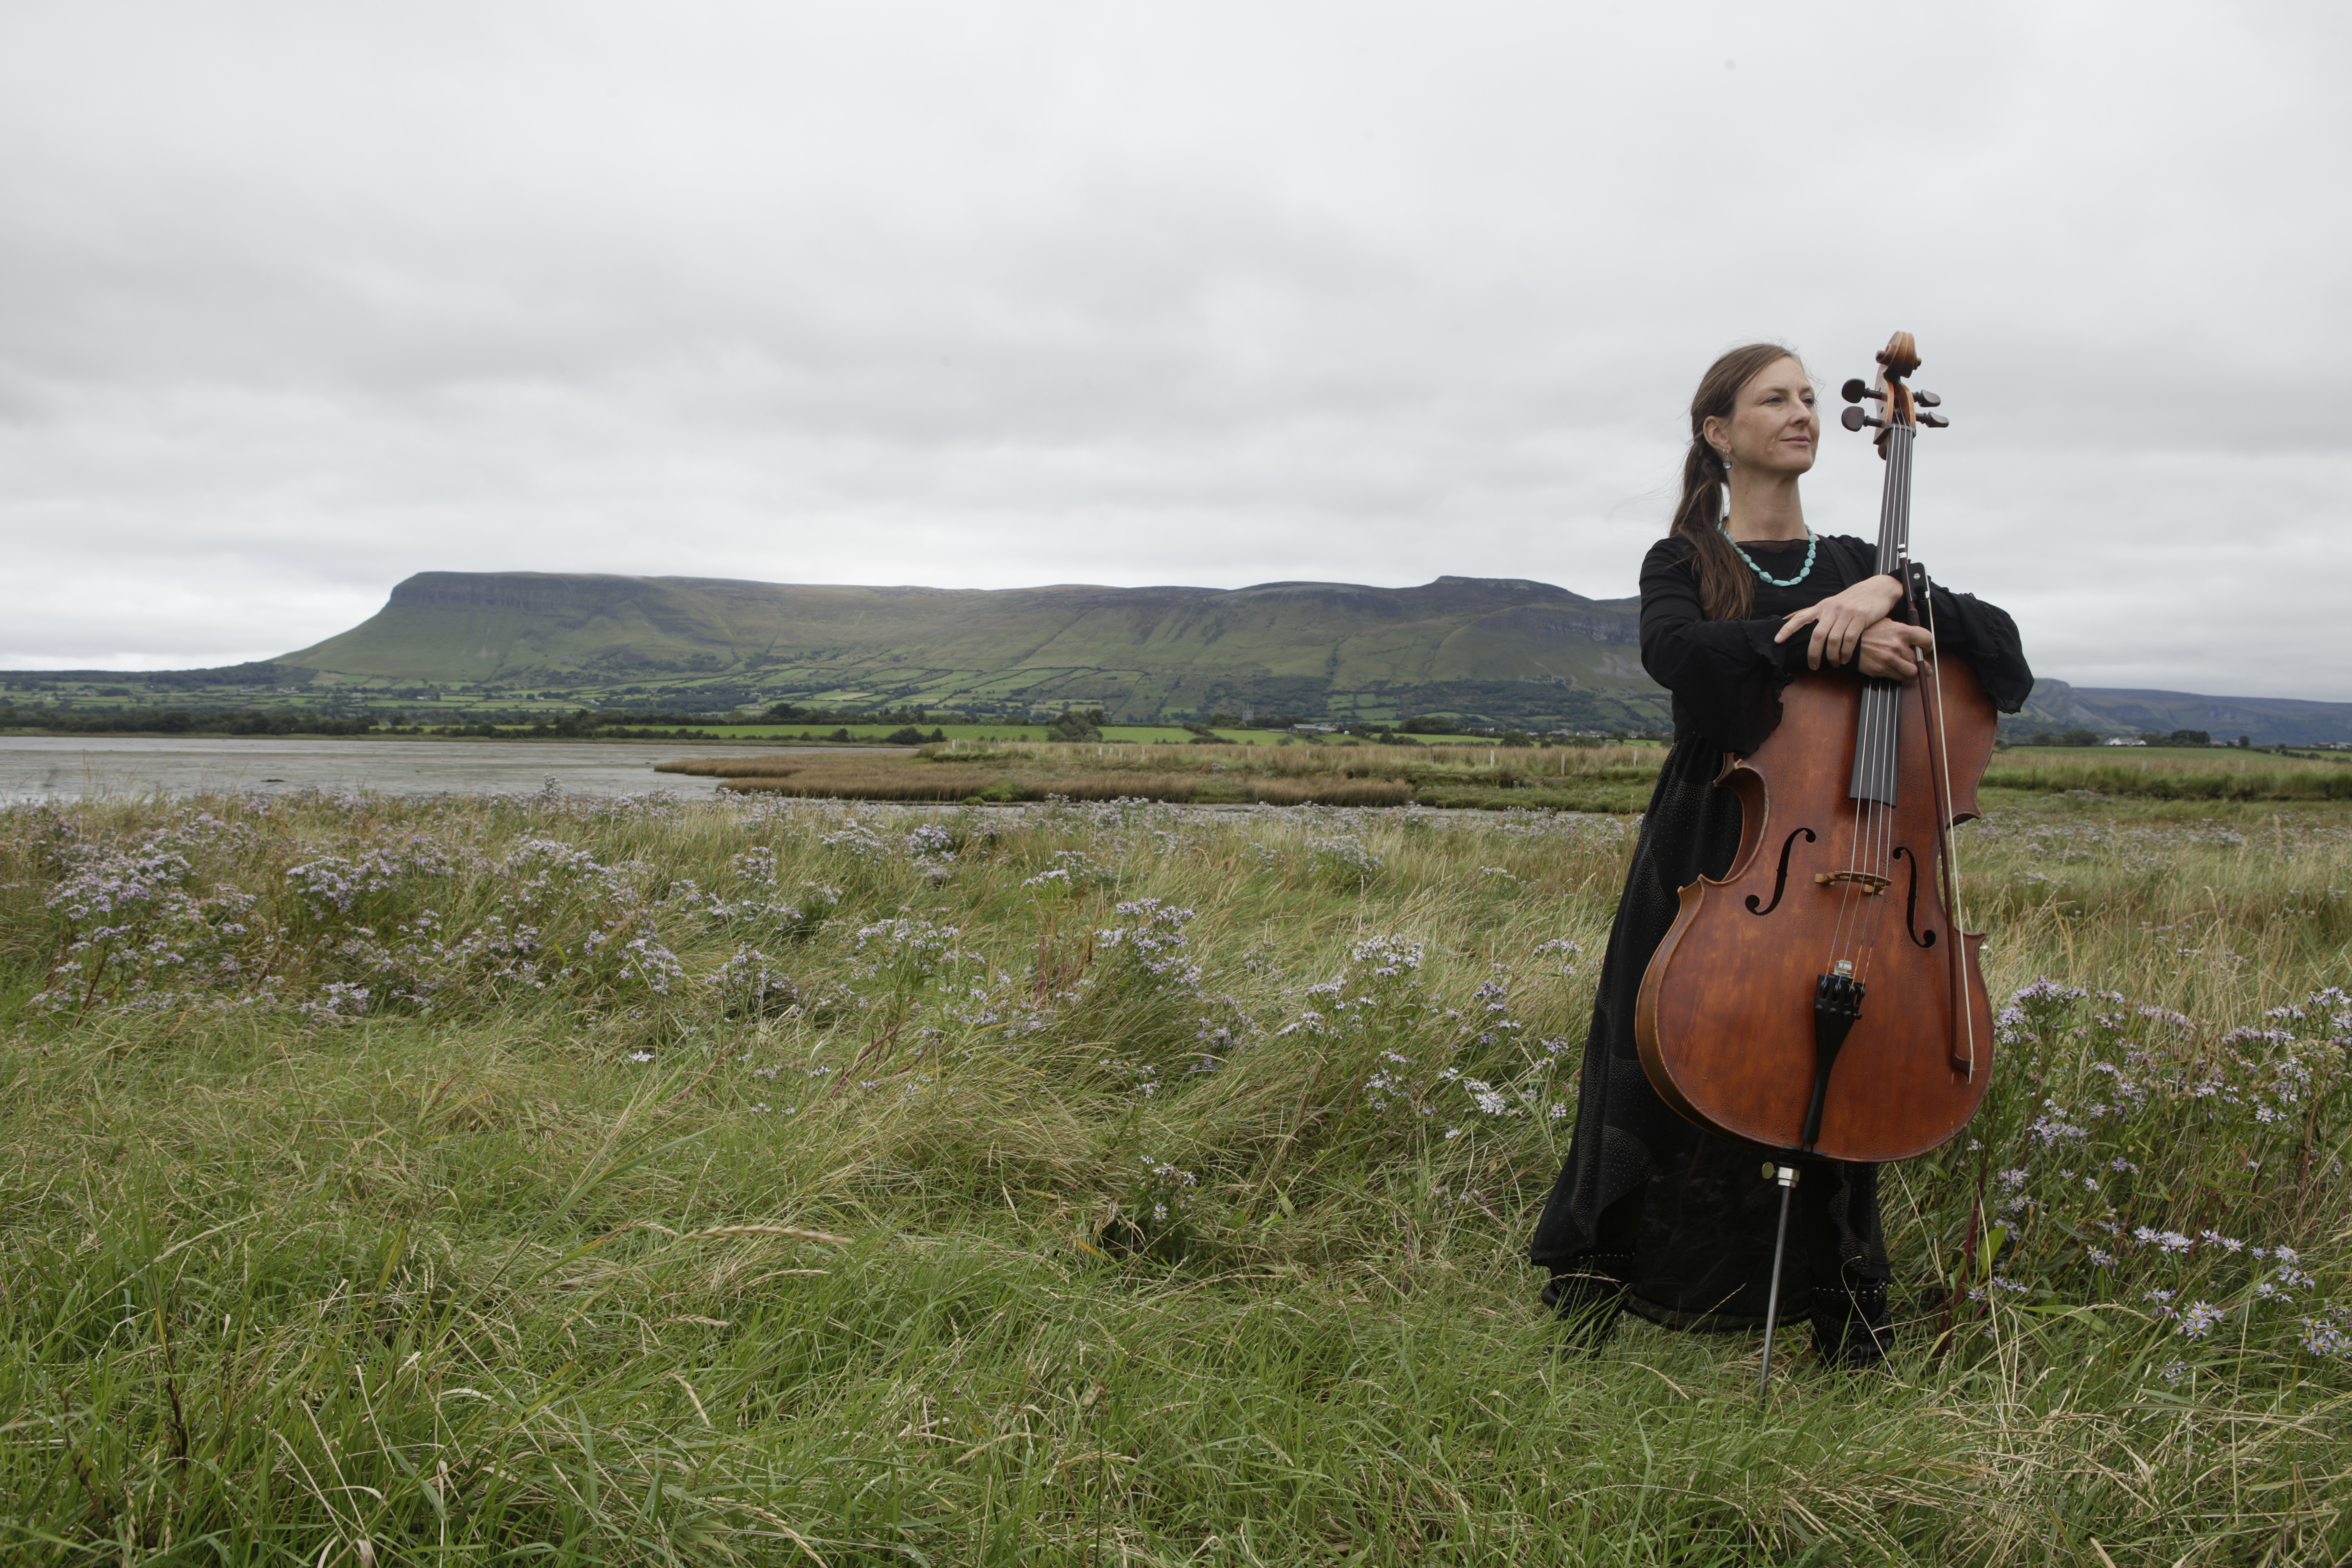 Ilse de Ziah cello concert - Saturday 3rd Nov 2018